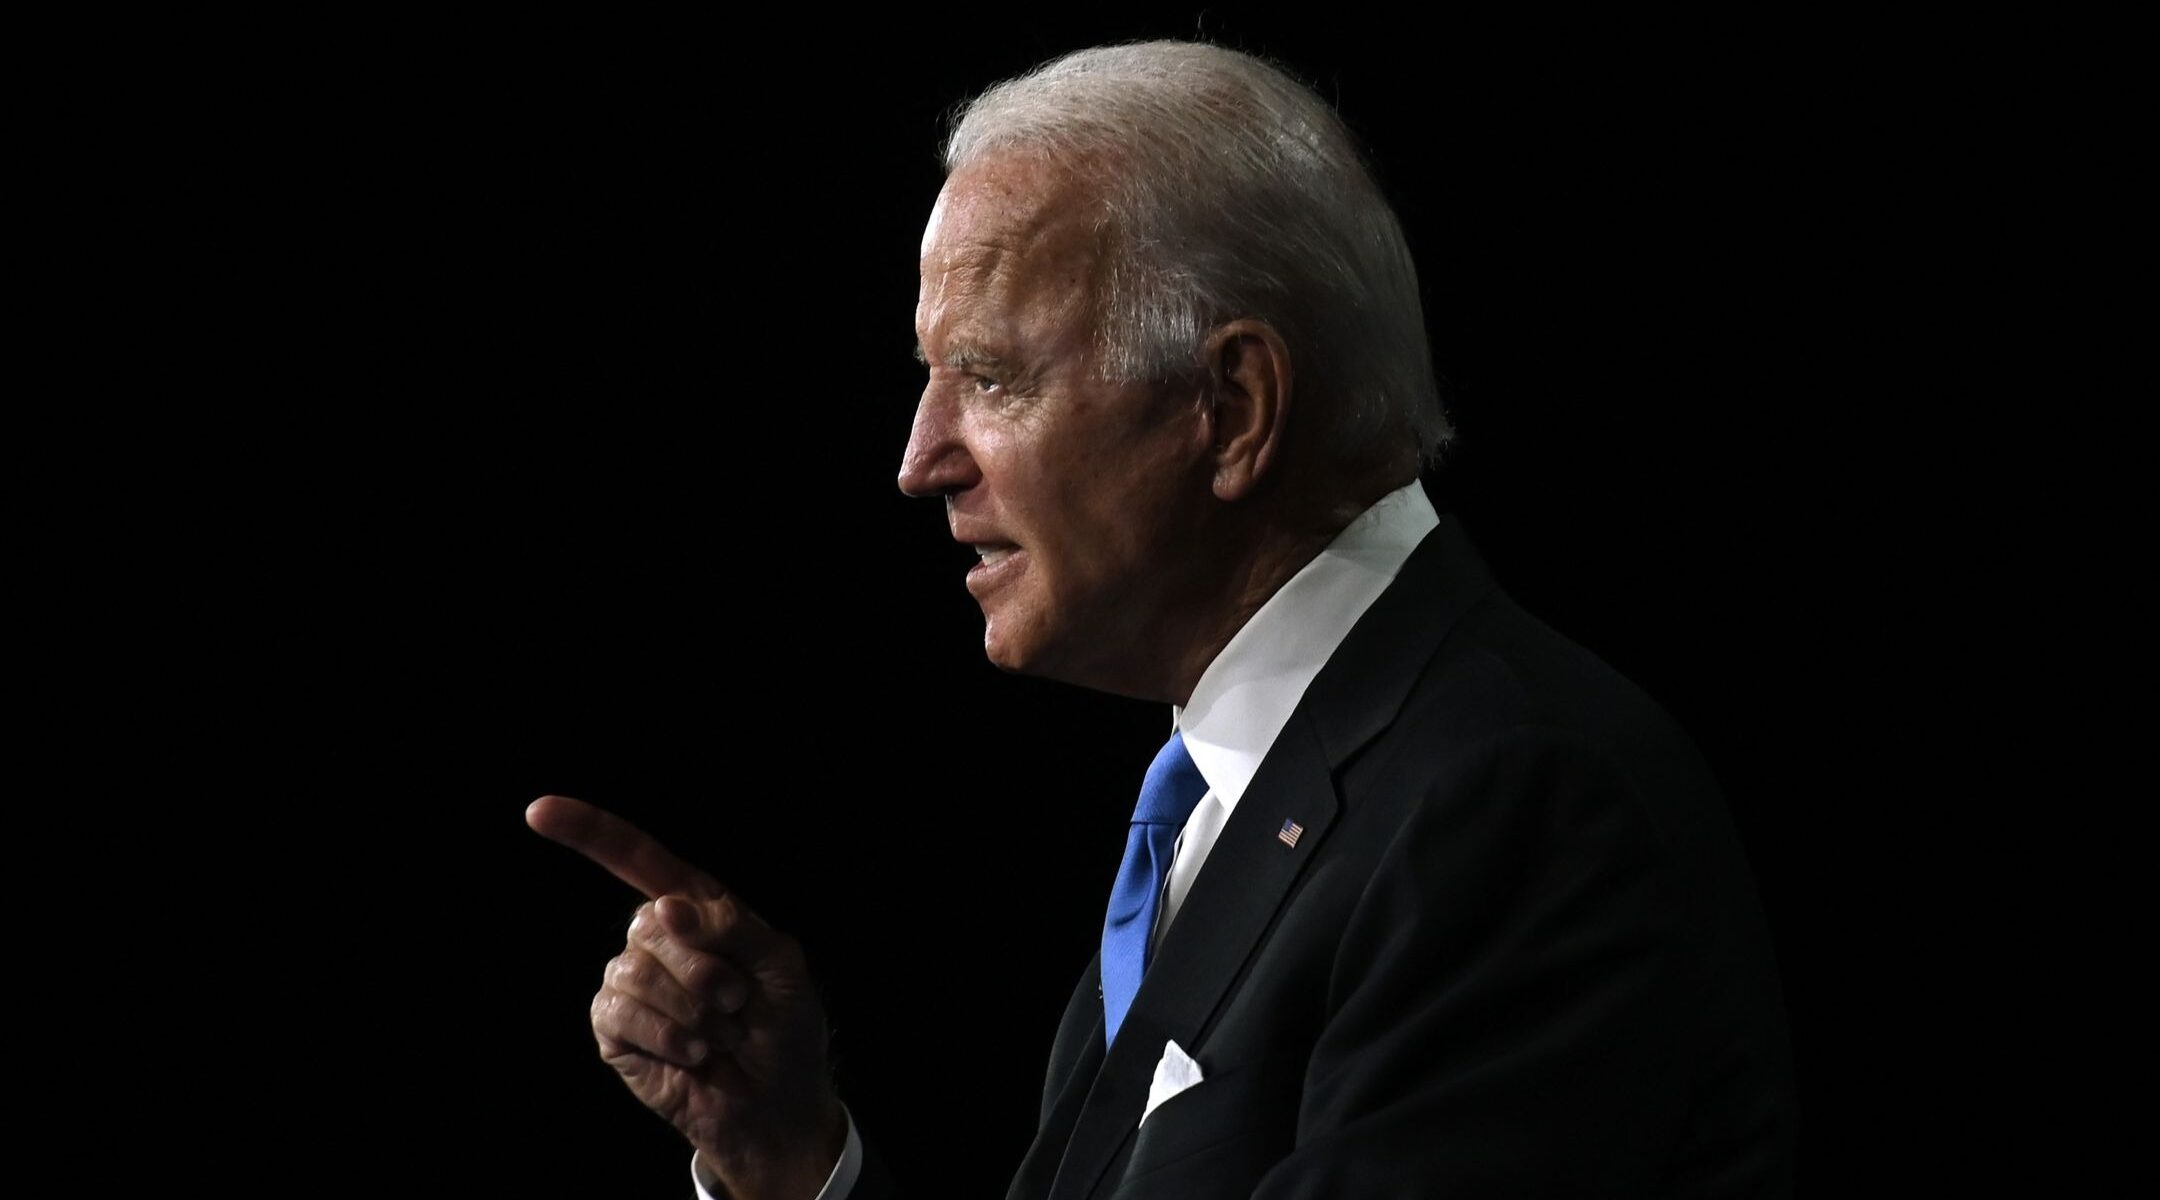 Joe Biden accepts the Democratic Party nomination for president during the last day of the Democratic National Convention, Aug. 20, 2020. (Photo/JTA-Olivier Douliery-AFP via Getty Images)